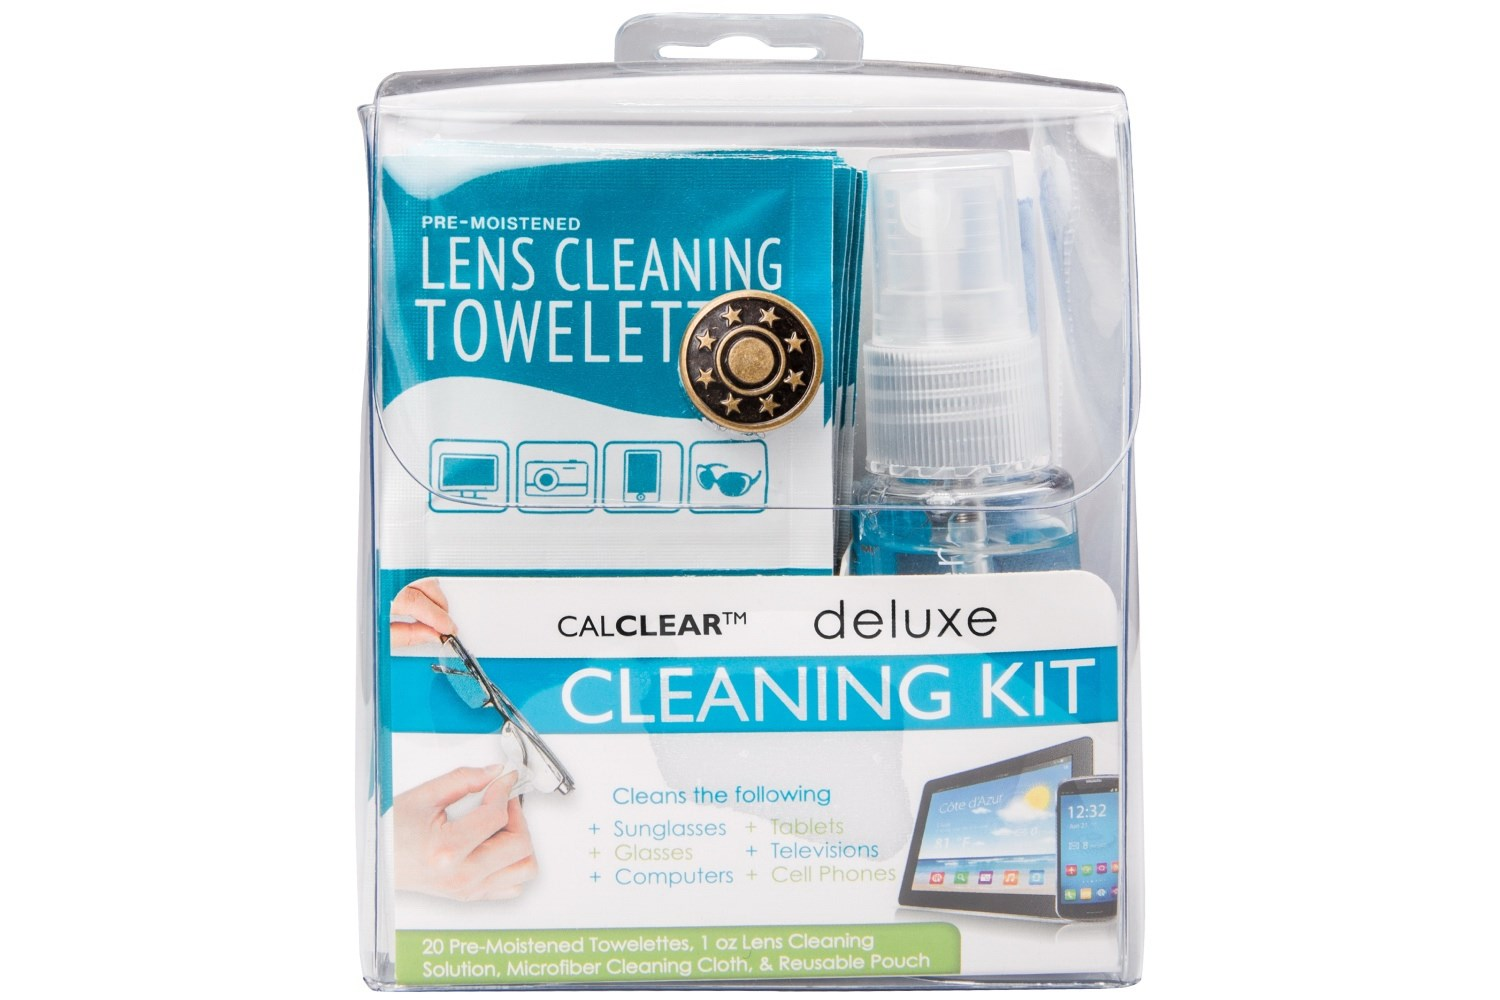 Deluxe Eyeglasses and Sunglasses Cleaning Kit